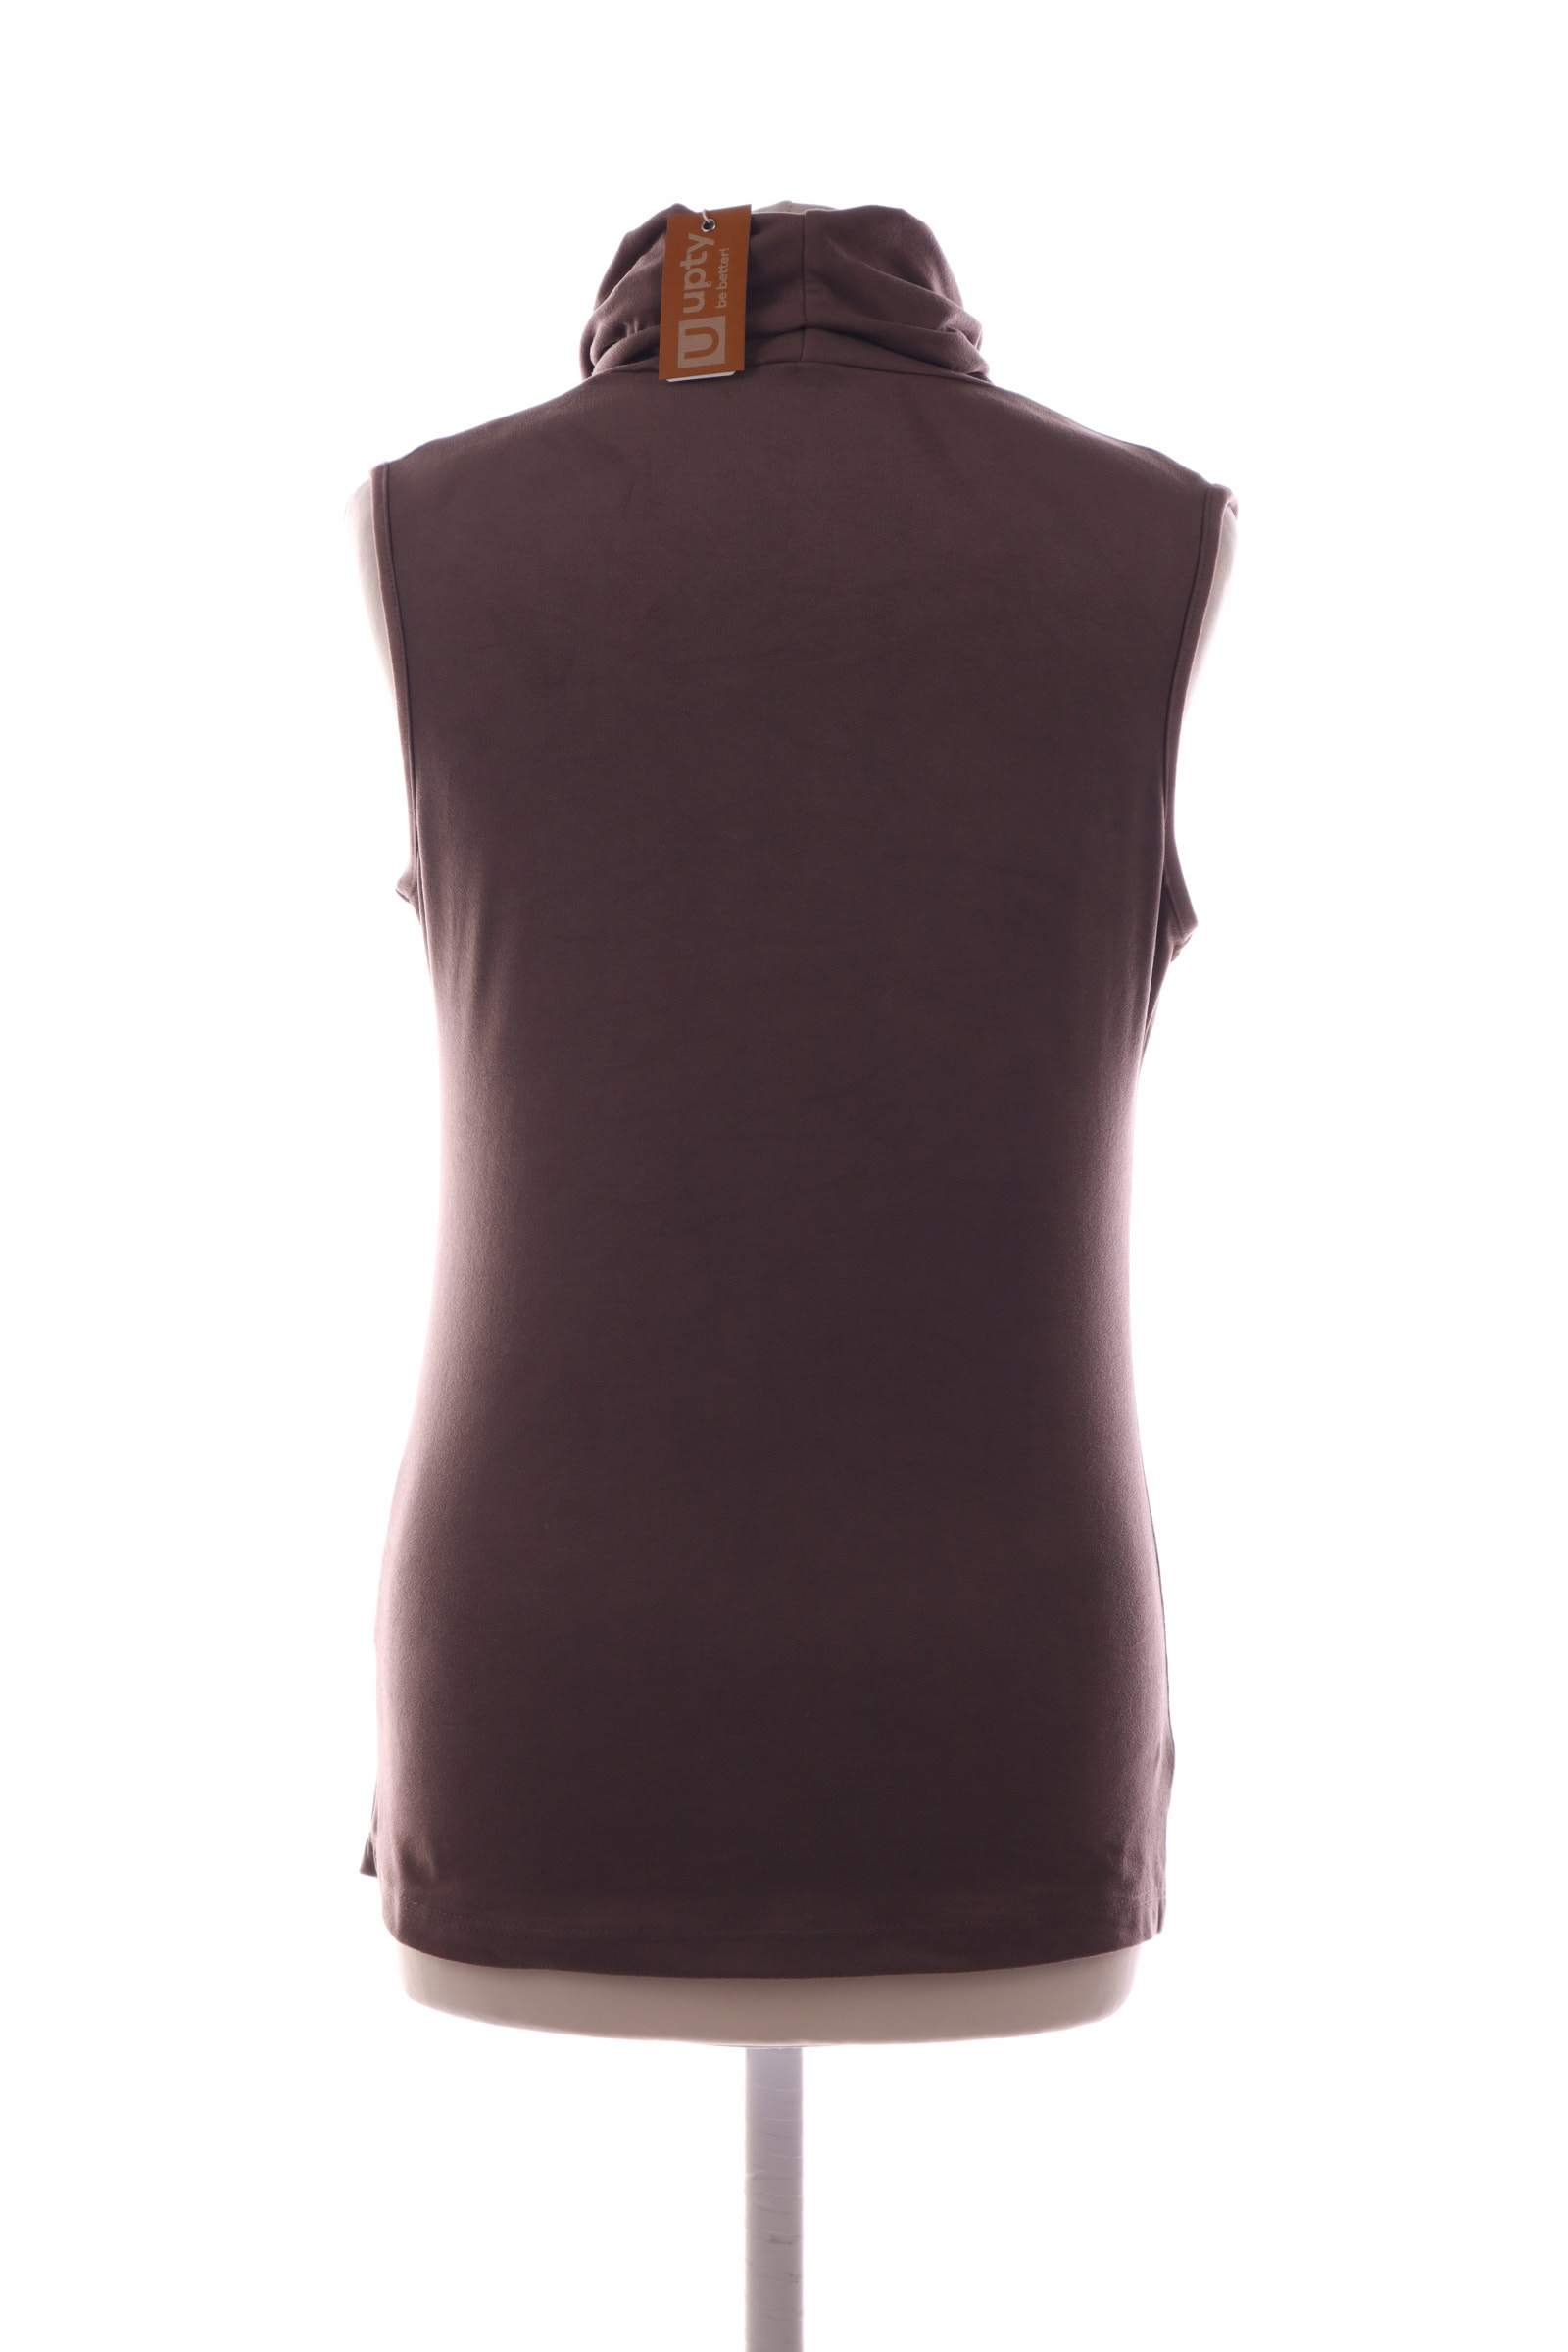 Berge Brown Top - upty.store